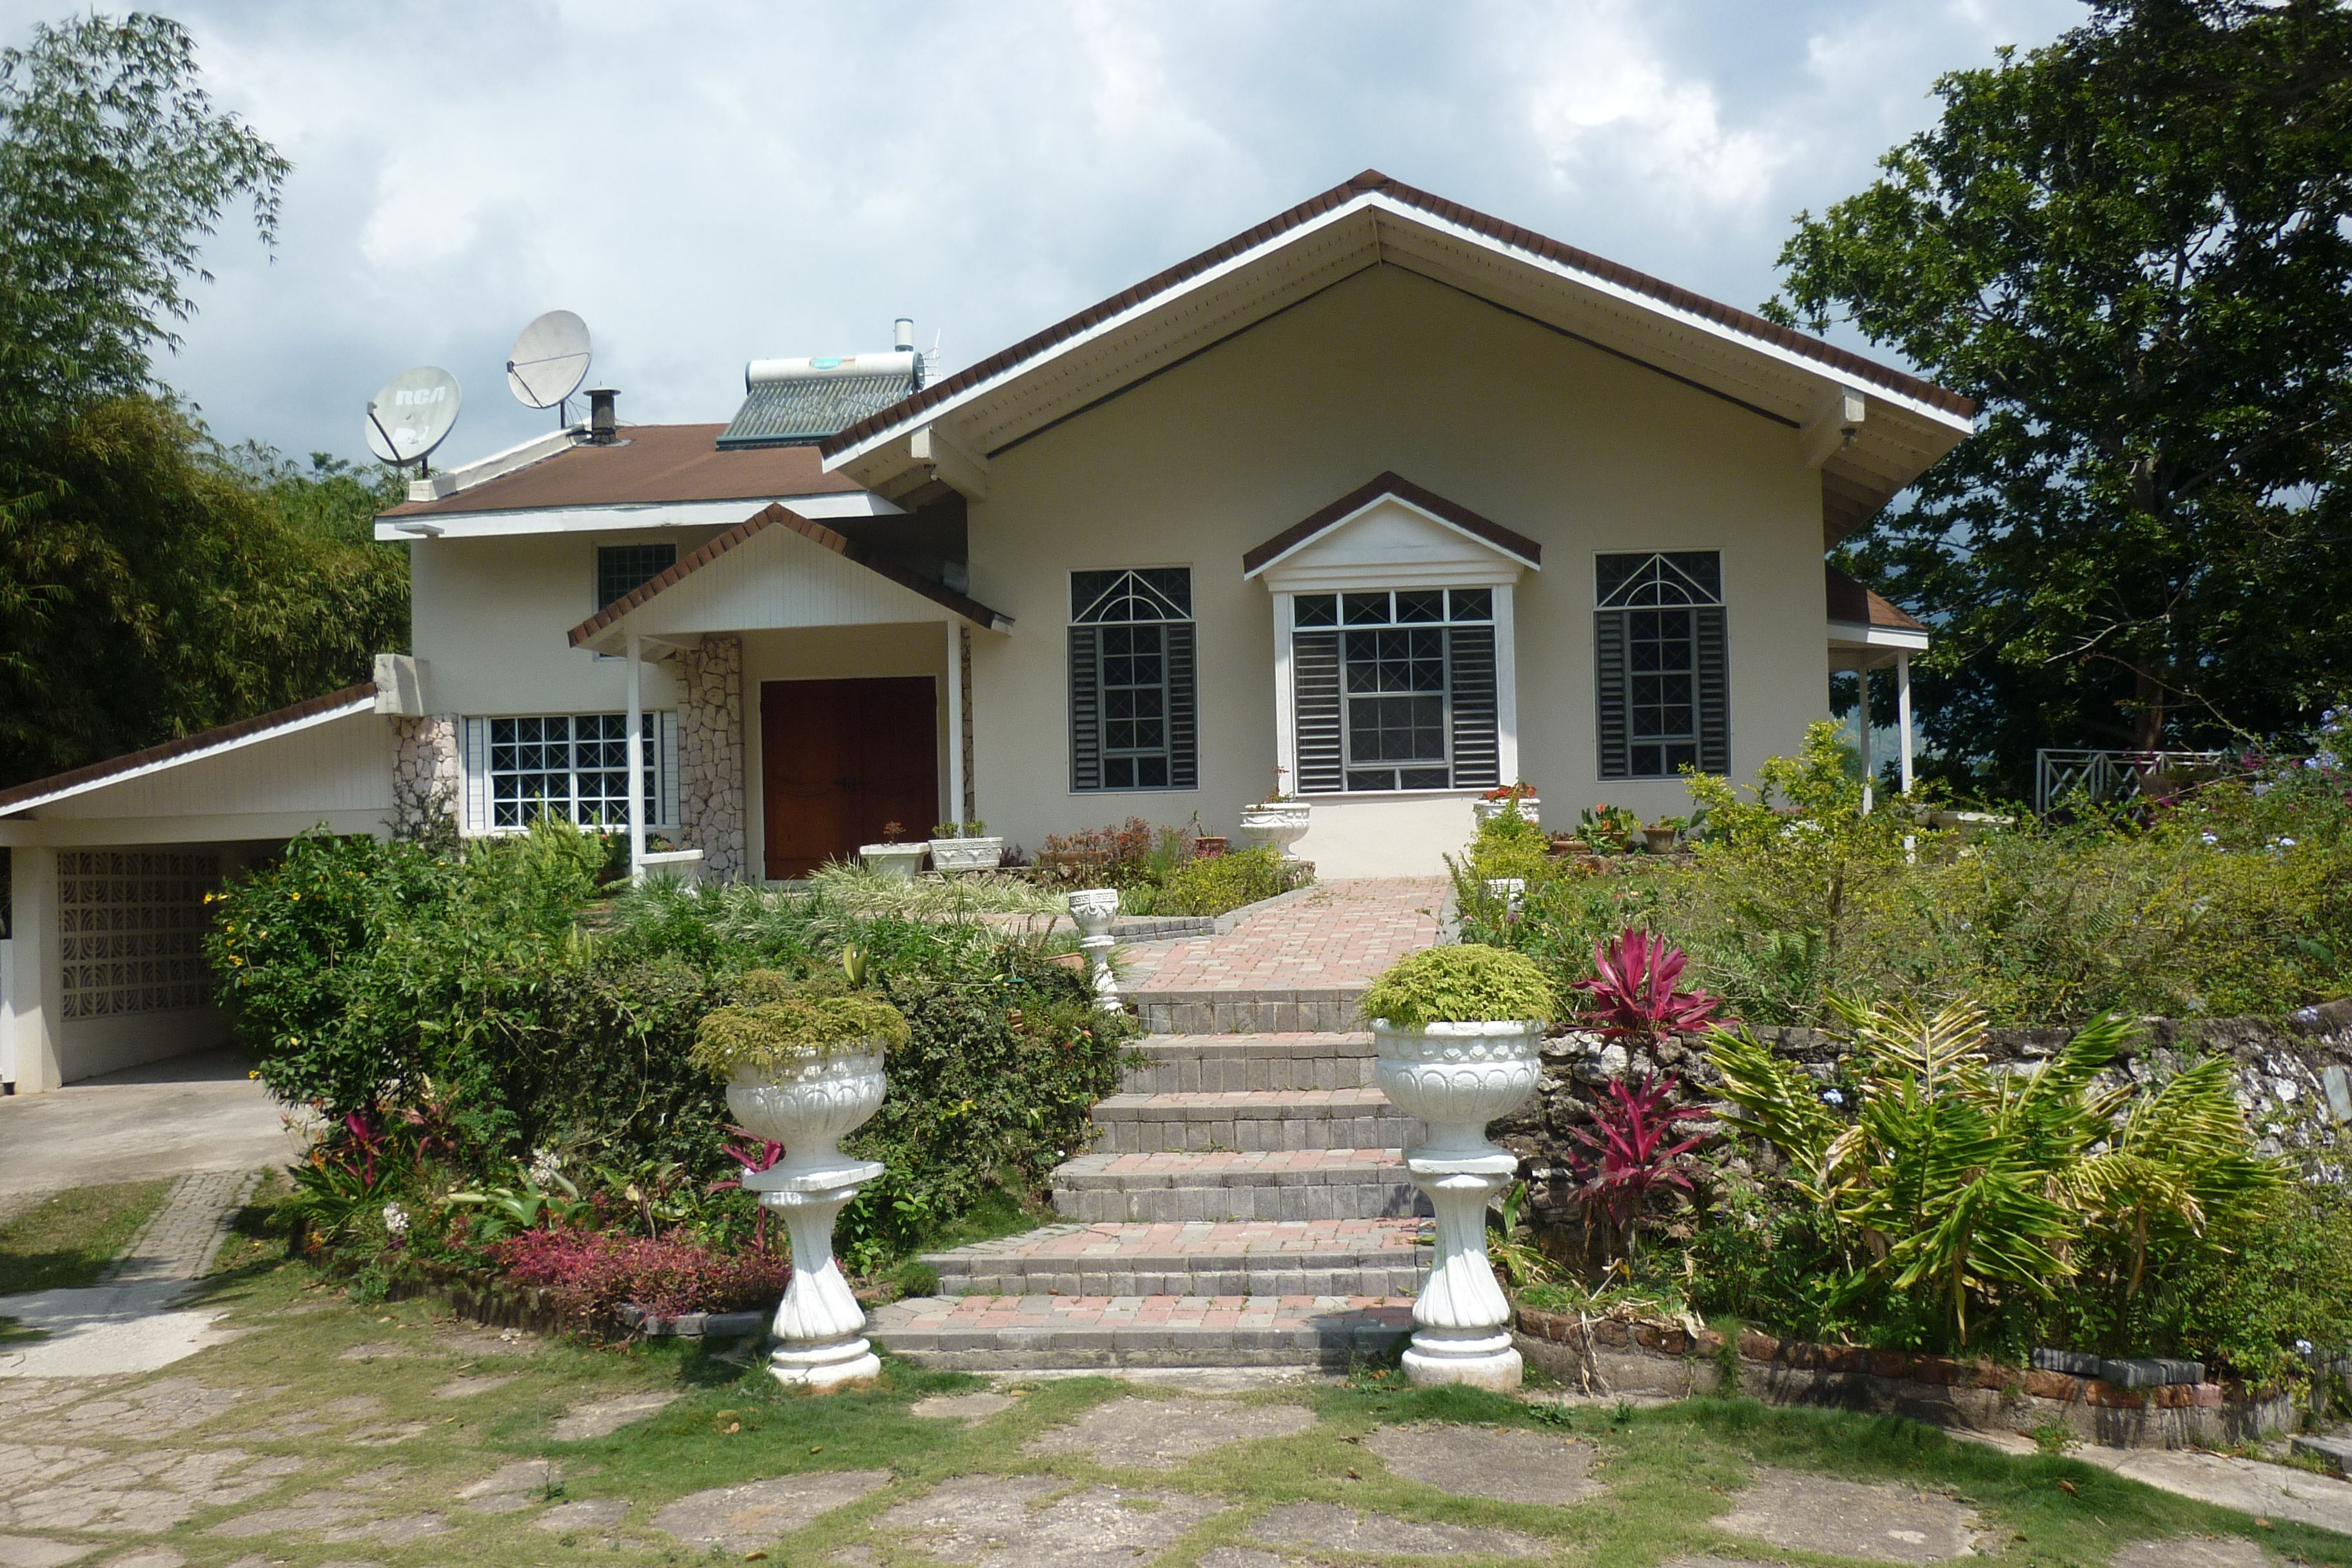 house for sale in kingston st andrew jamaica w i this